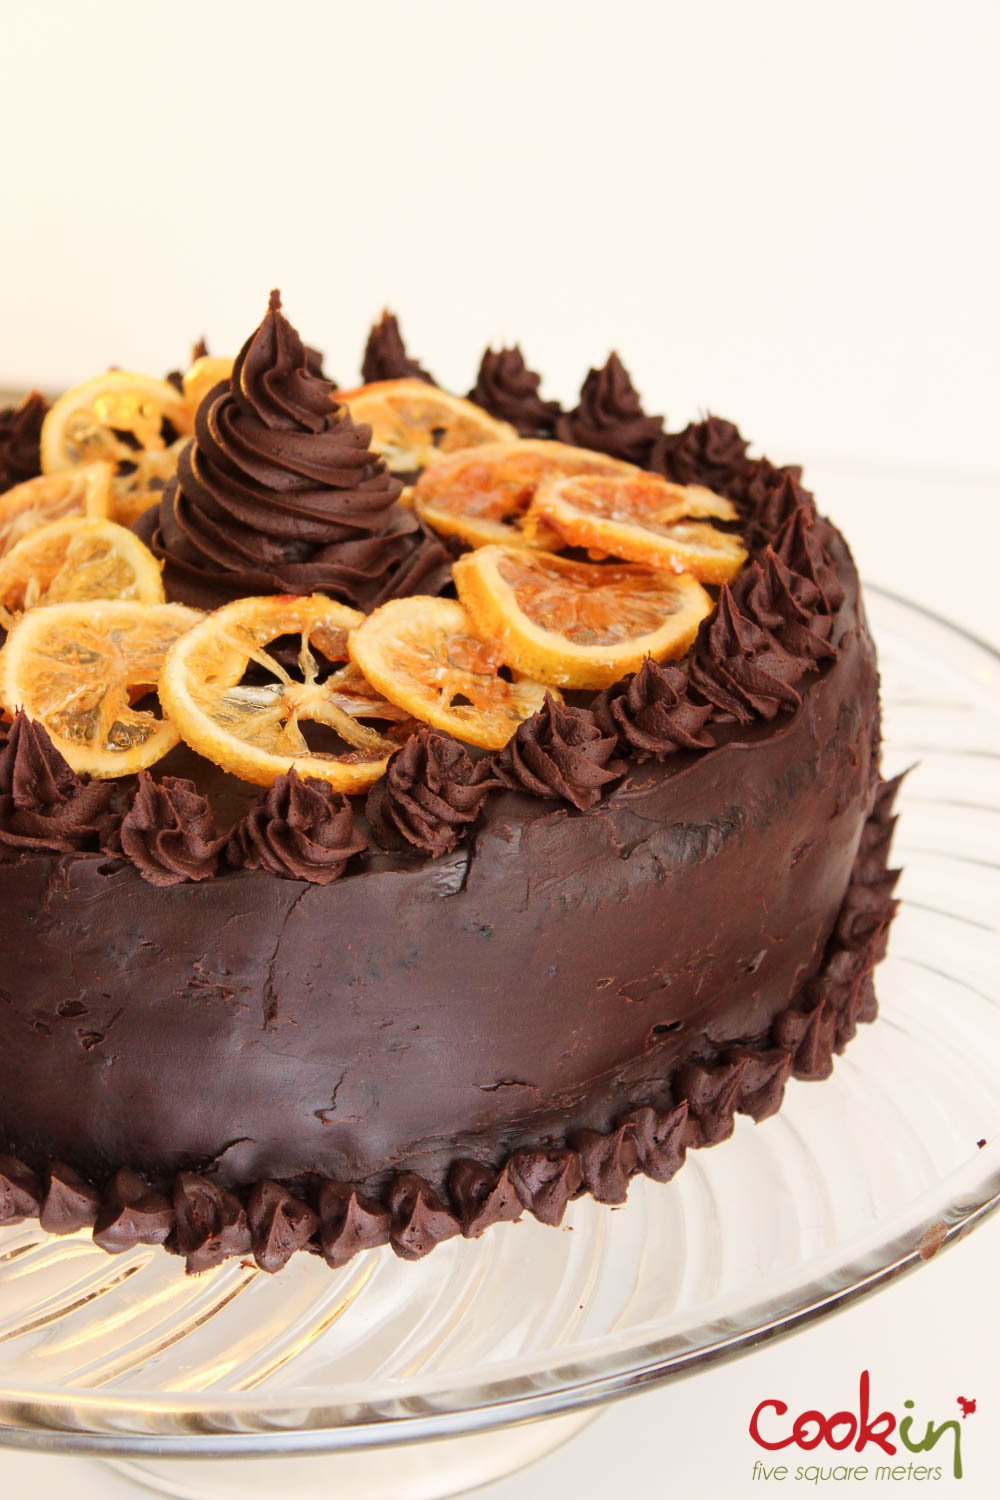 My 27th Birthday And Orange Chocolate Cake With Ganache Frosting And